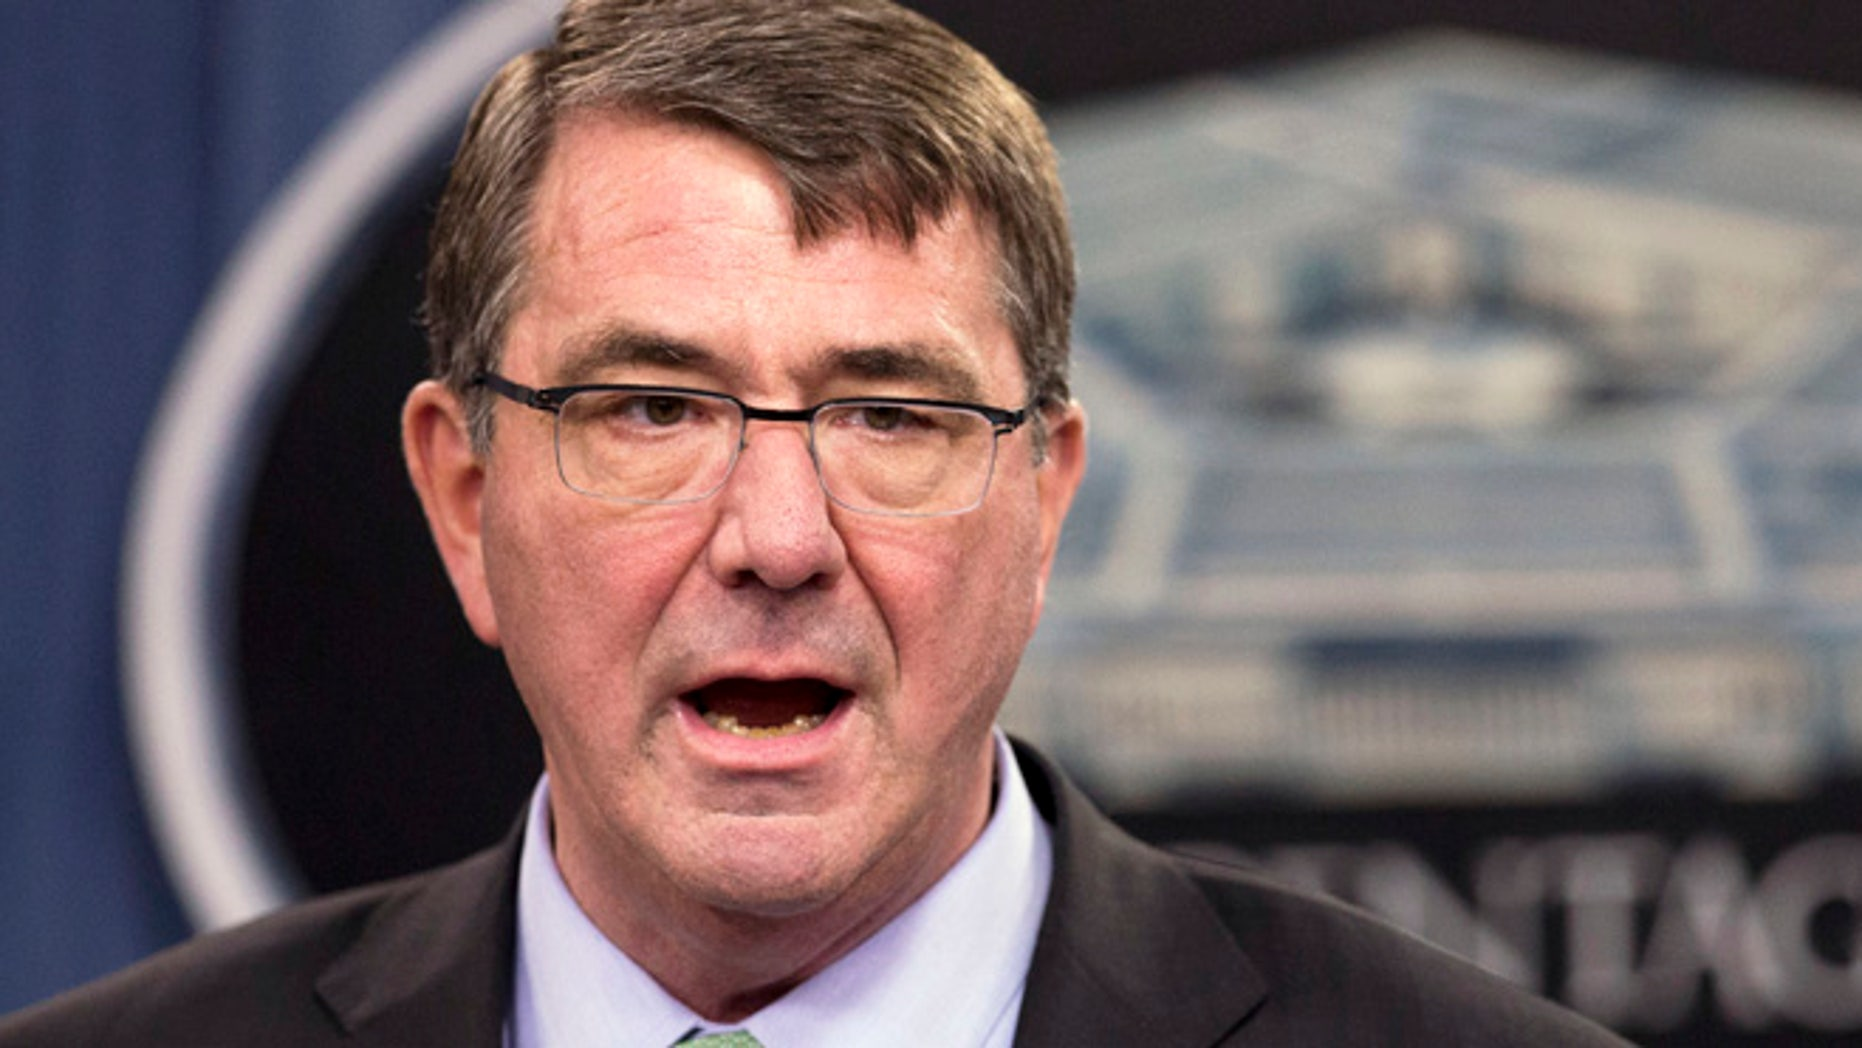 May 1, 2015: Defense Secretary Ash Carter speaks during a news conference at the Pentagon in Washington.